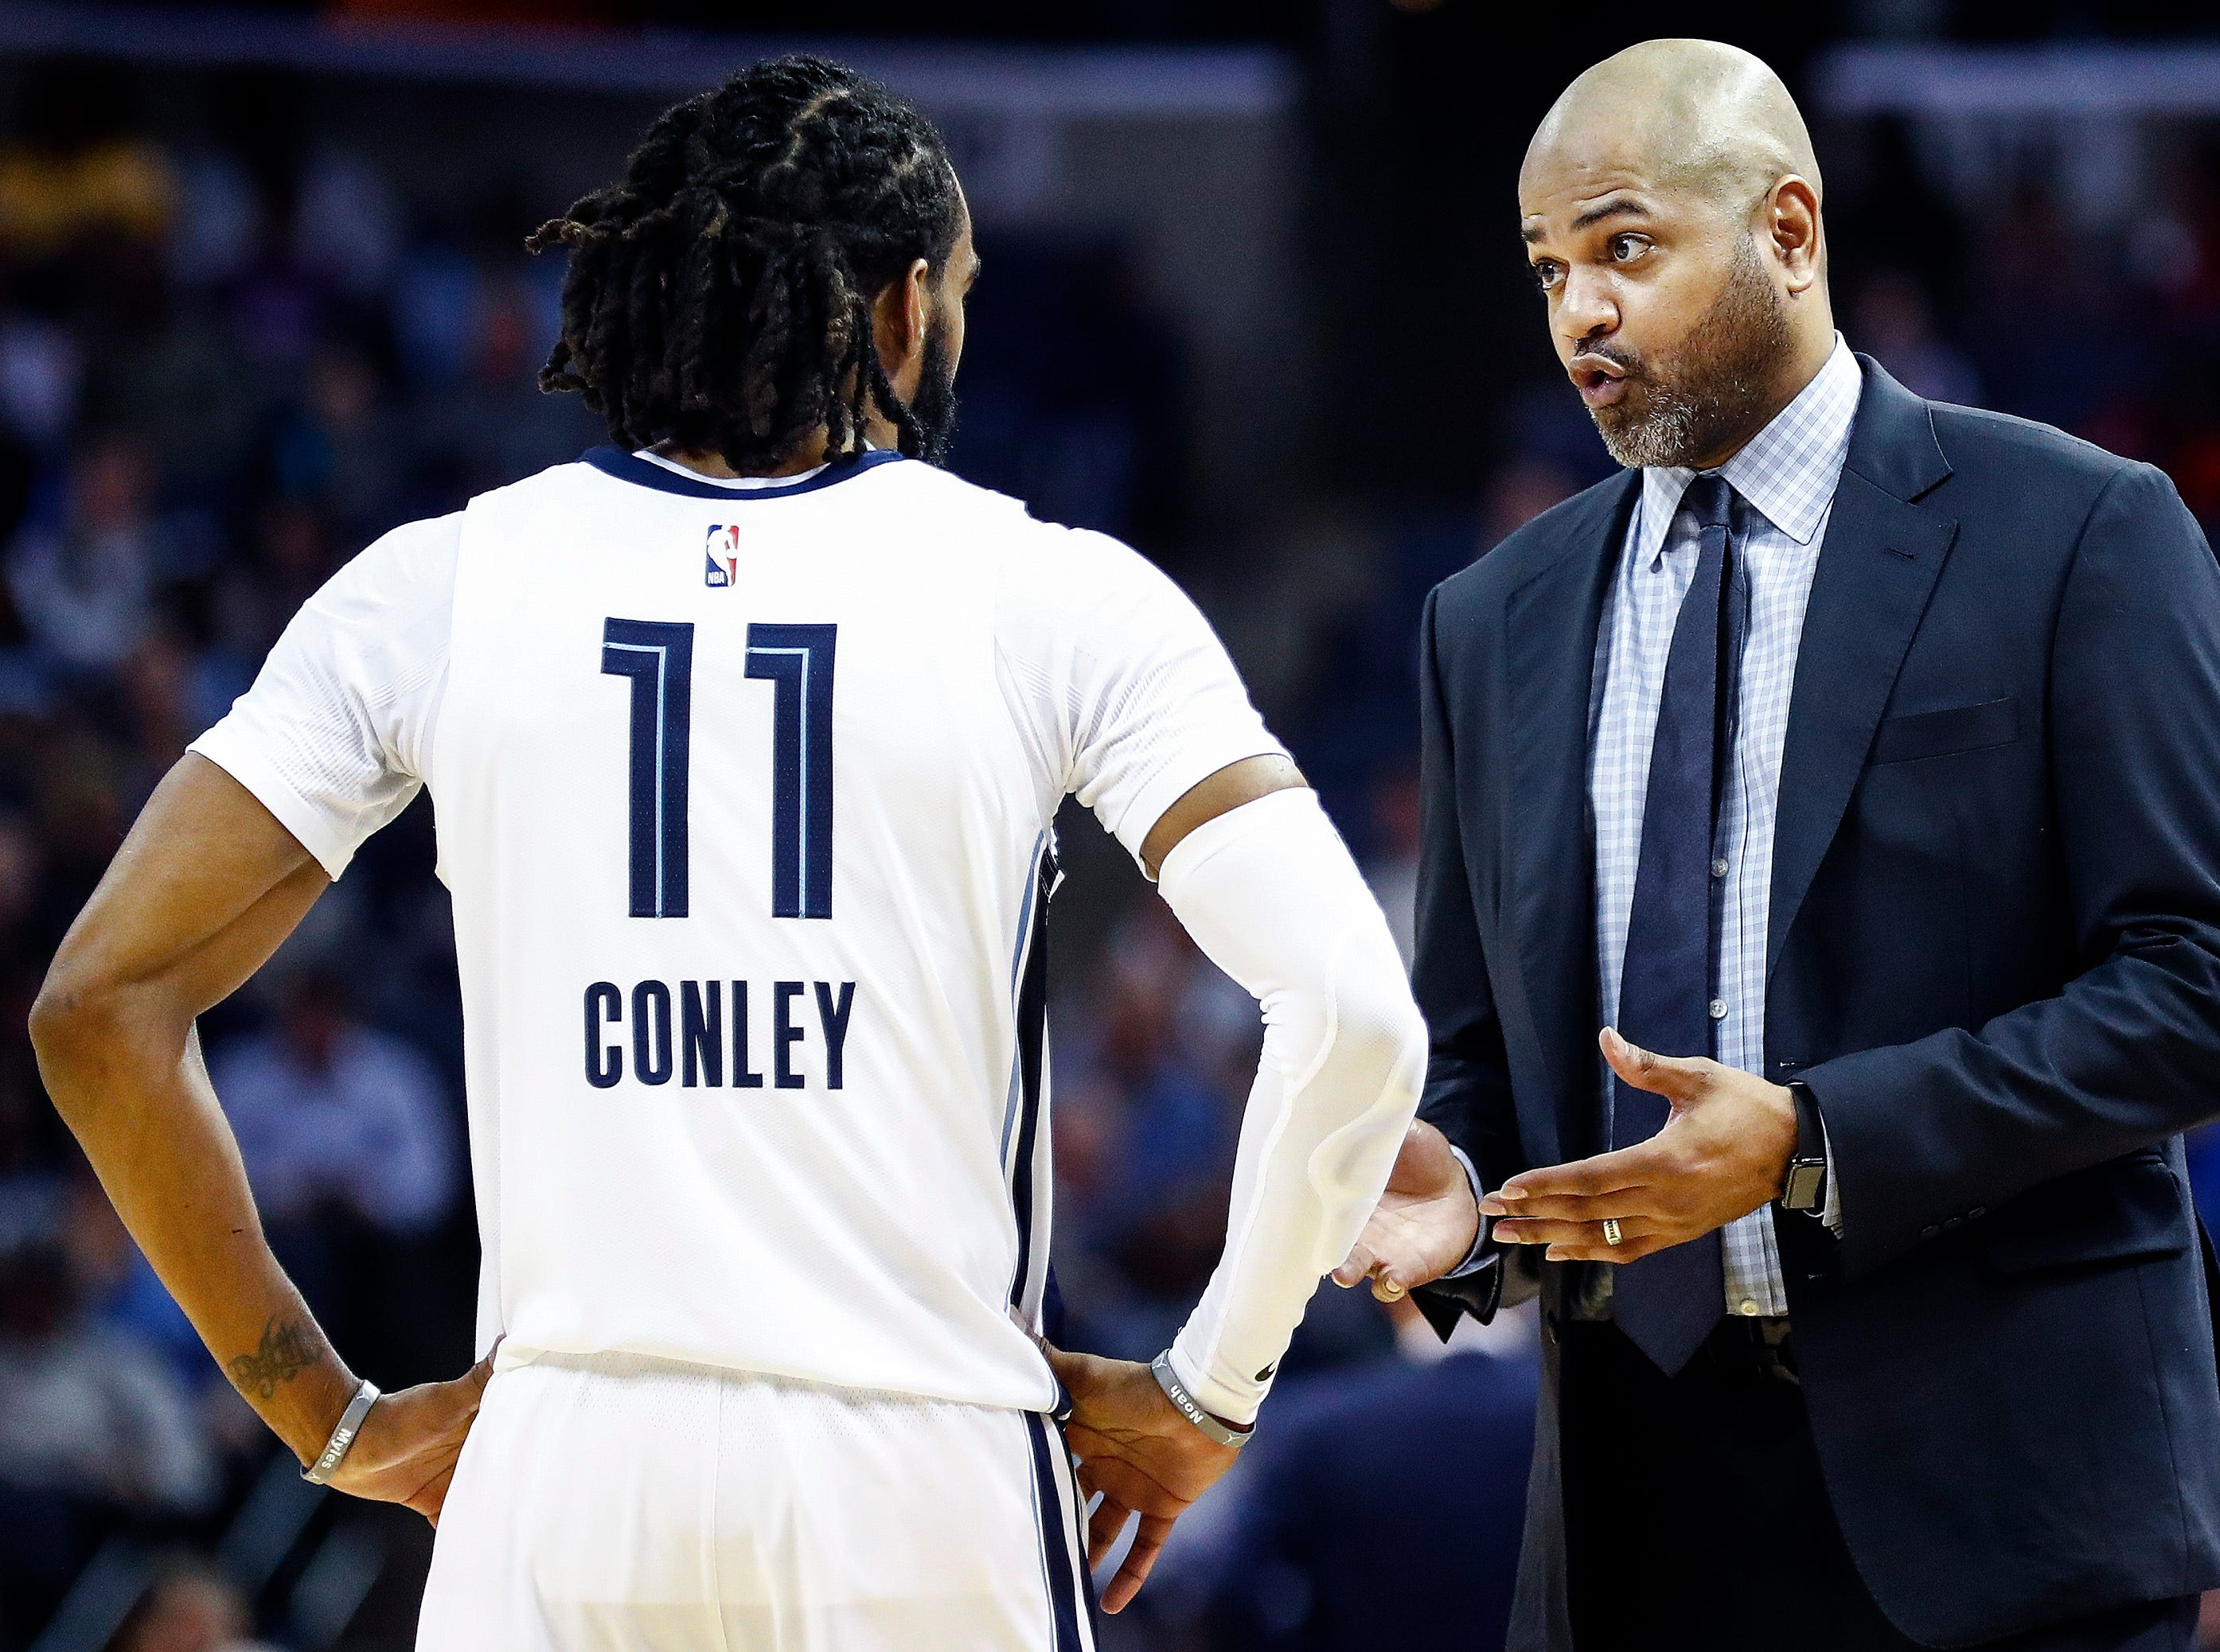 Memphis Grizzlies head coach J.B. Bickerstaff (right) talks to Mike Conley during action against the Minnesota Timberwolves at the FedExForum in Memphis, Tenn., Tuesday, February 5, 2019.